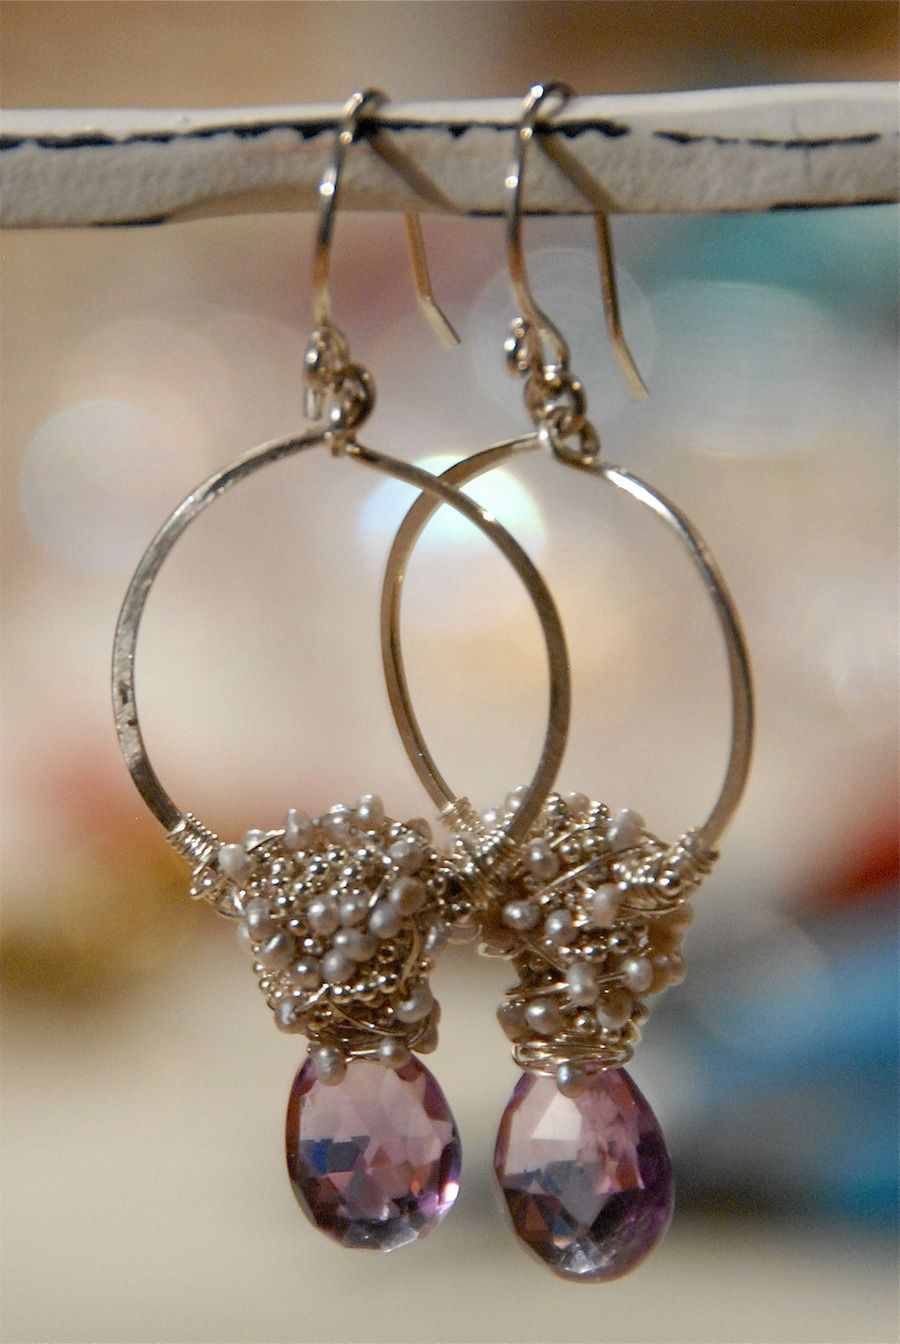 Wire-Wrapped Stones, Crystals & Clusters   Pinterest   Wire wrapped ...